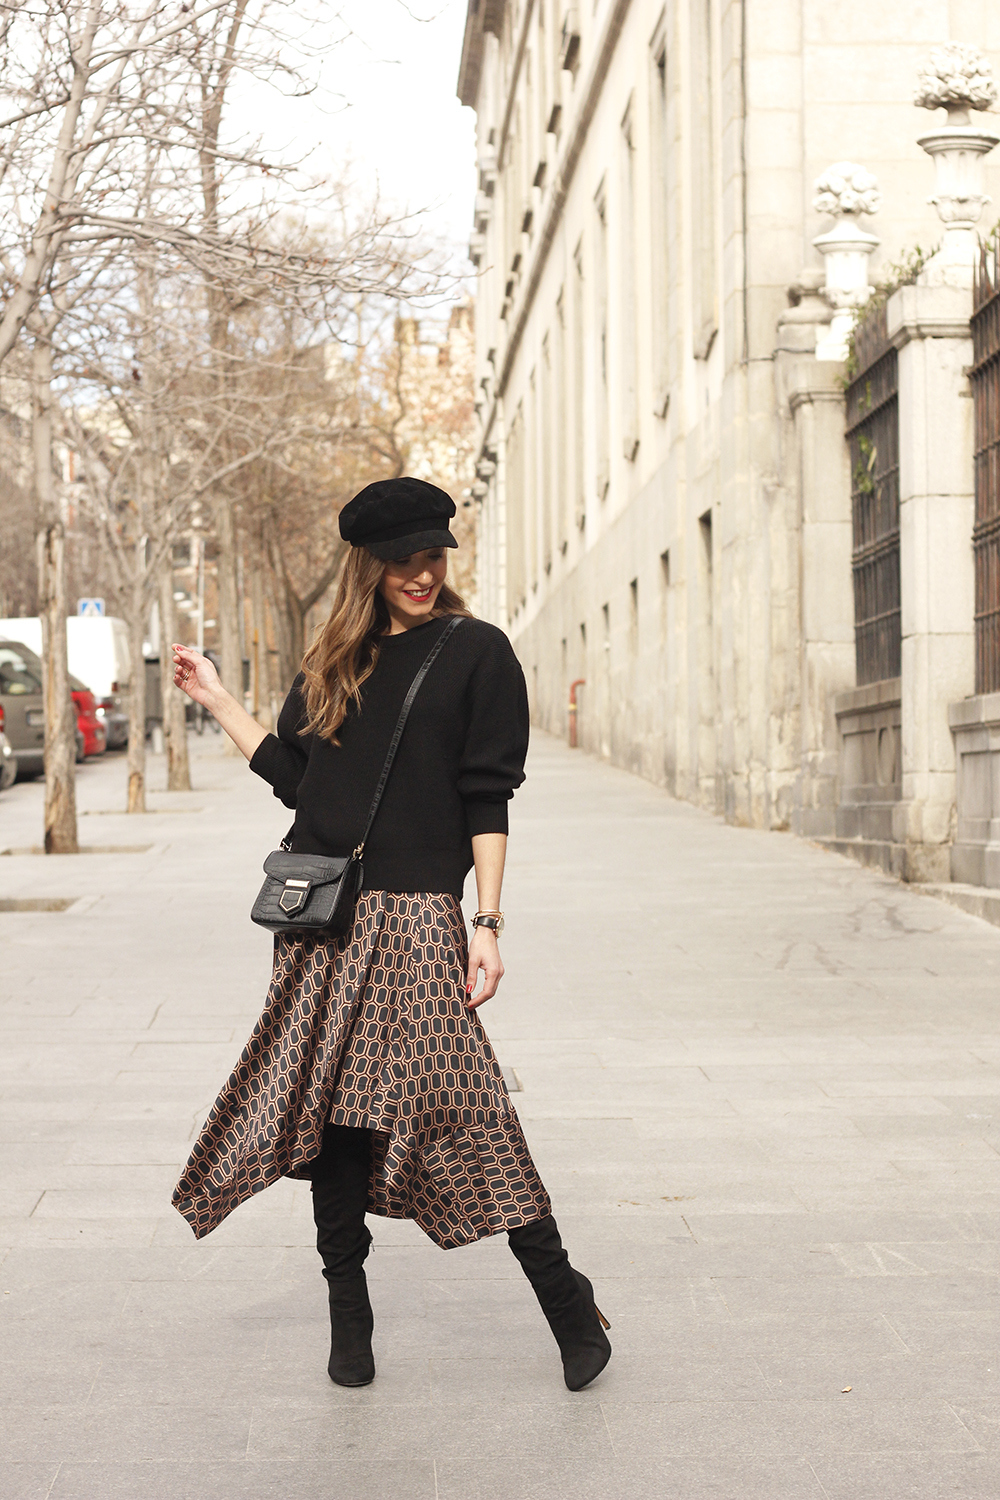 Midi skirt geometrical print marc jacobs watch over the knee boots givenchy bag winter outfit street style09